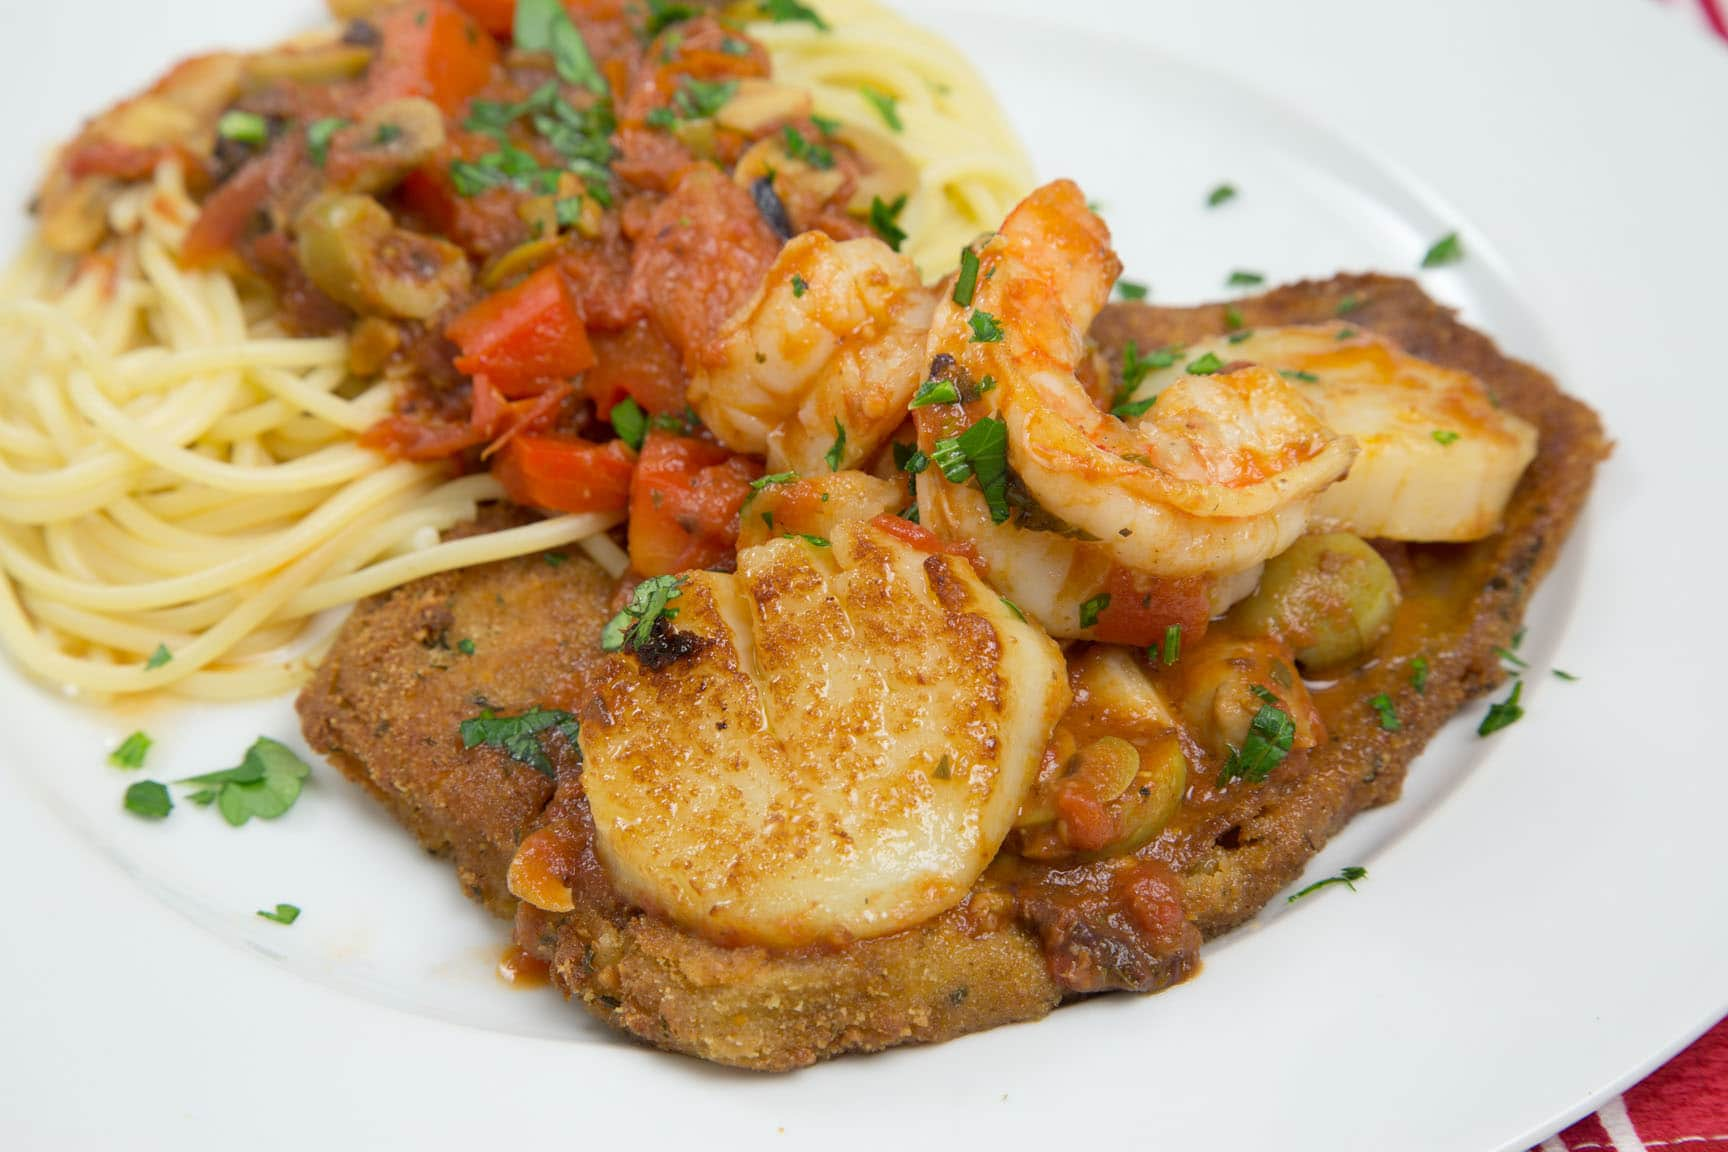 Scallops And Shrimp Over Pasta And Fried Eggplant